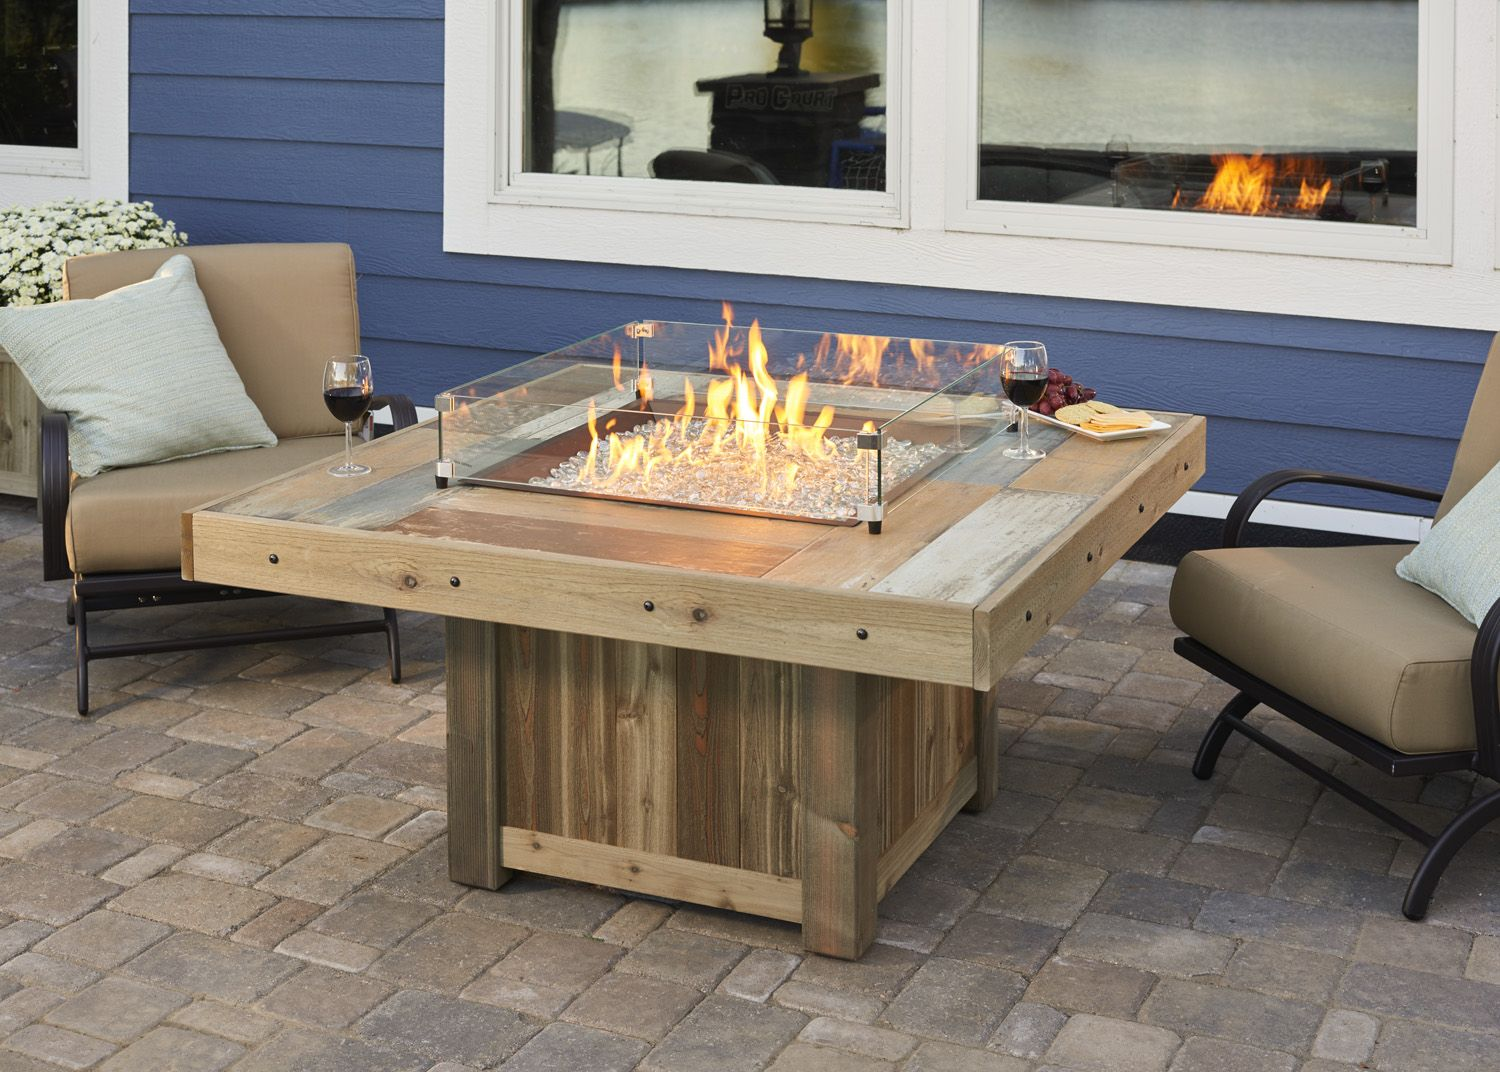 Vintage Fire Pit Table from Wissota Outdoor Living